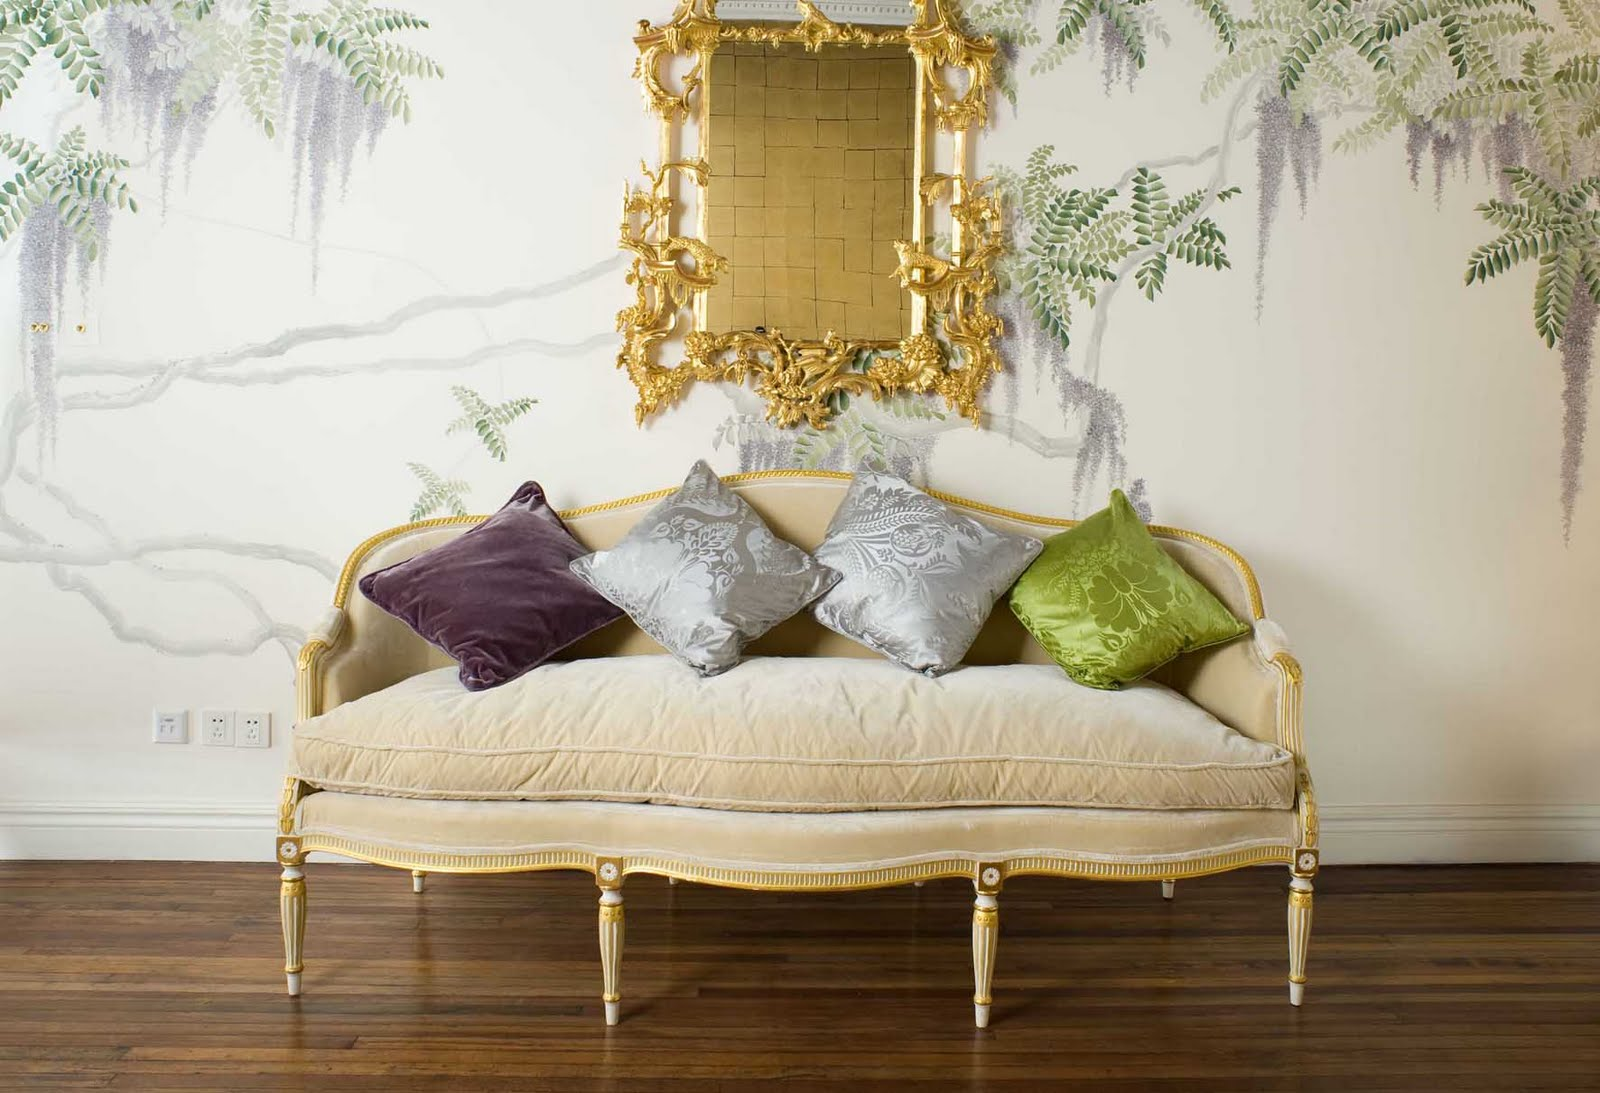 Wallpaper De Gournay Wallpaper